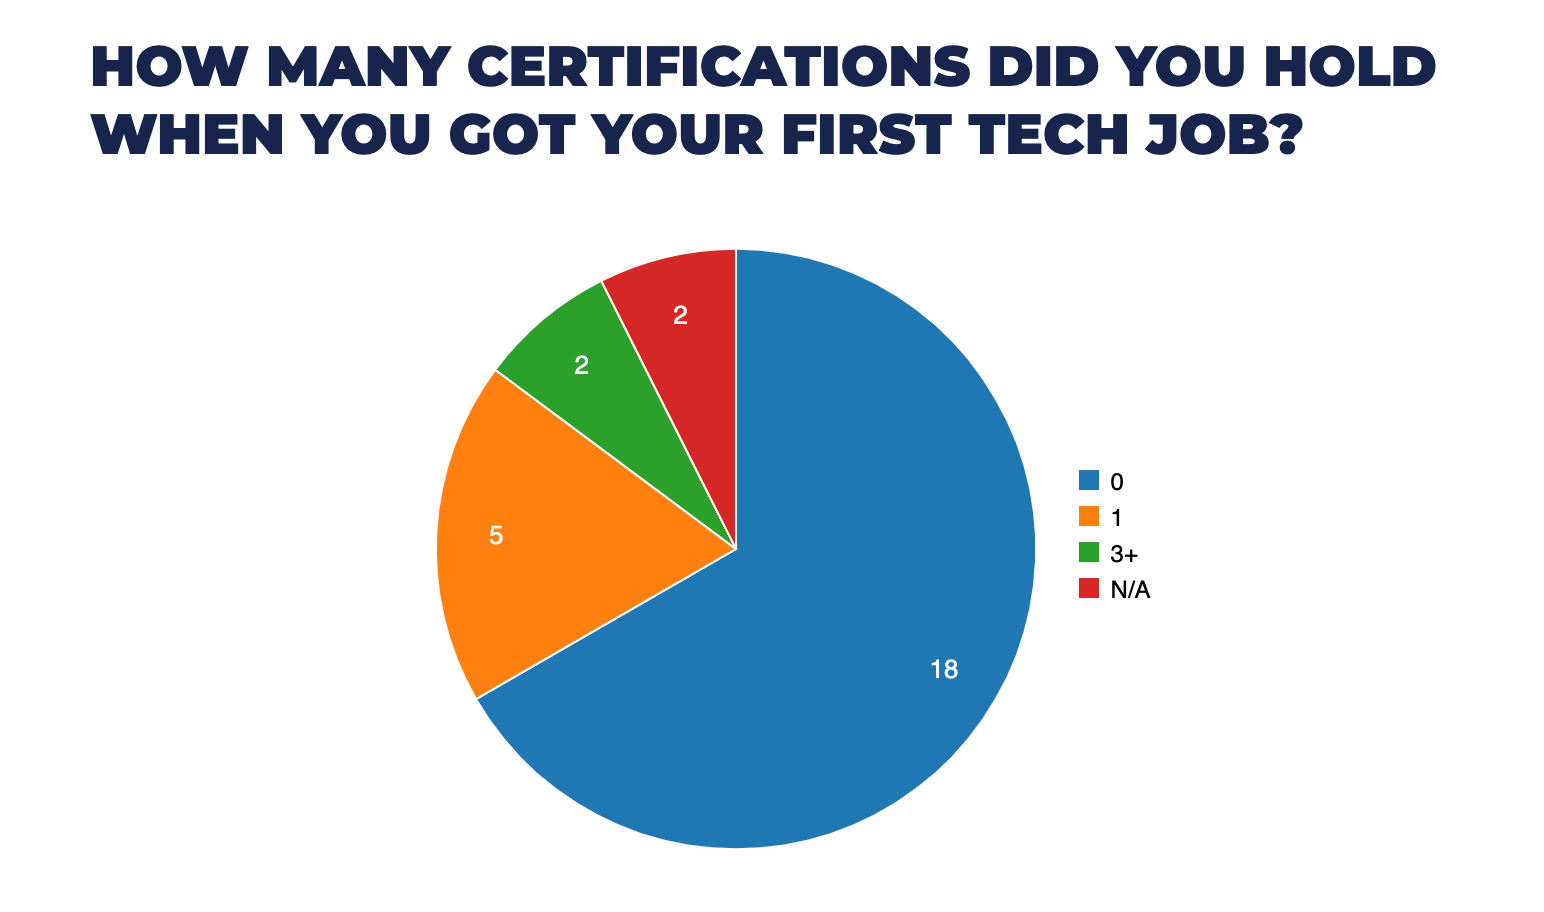 How many certifications did you hold when you got your first tech job?